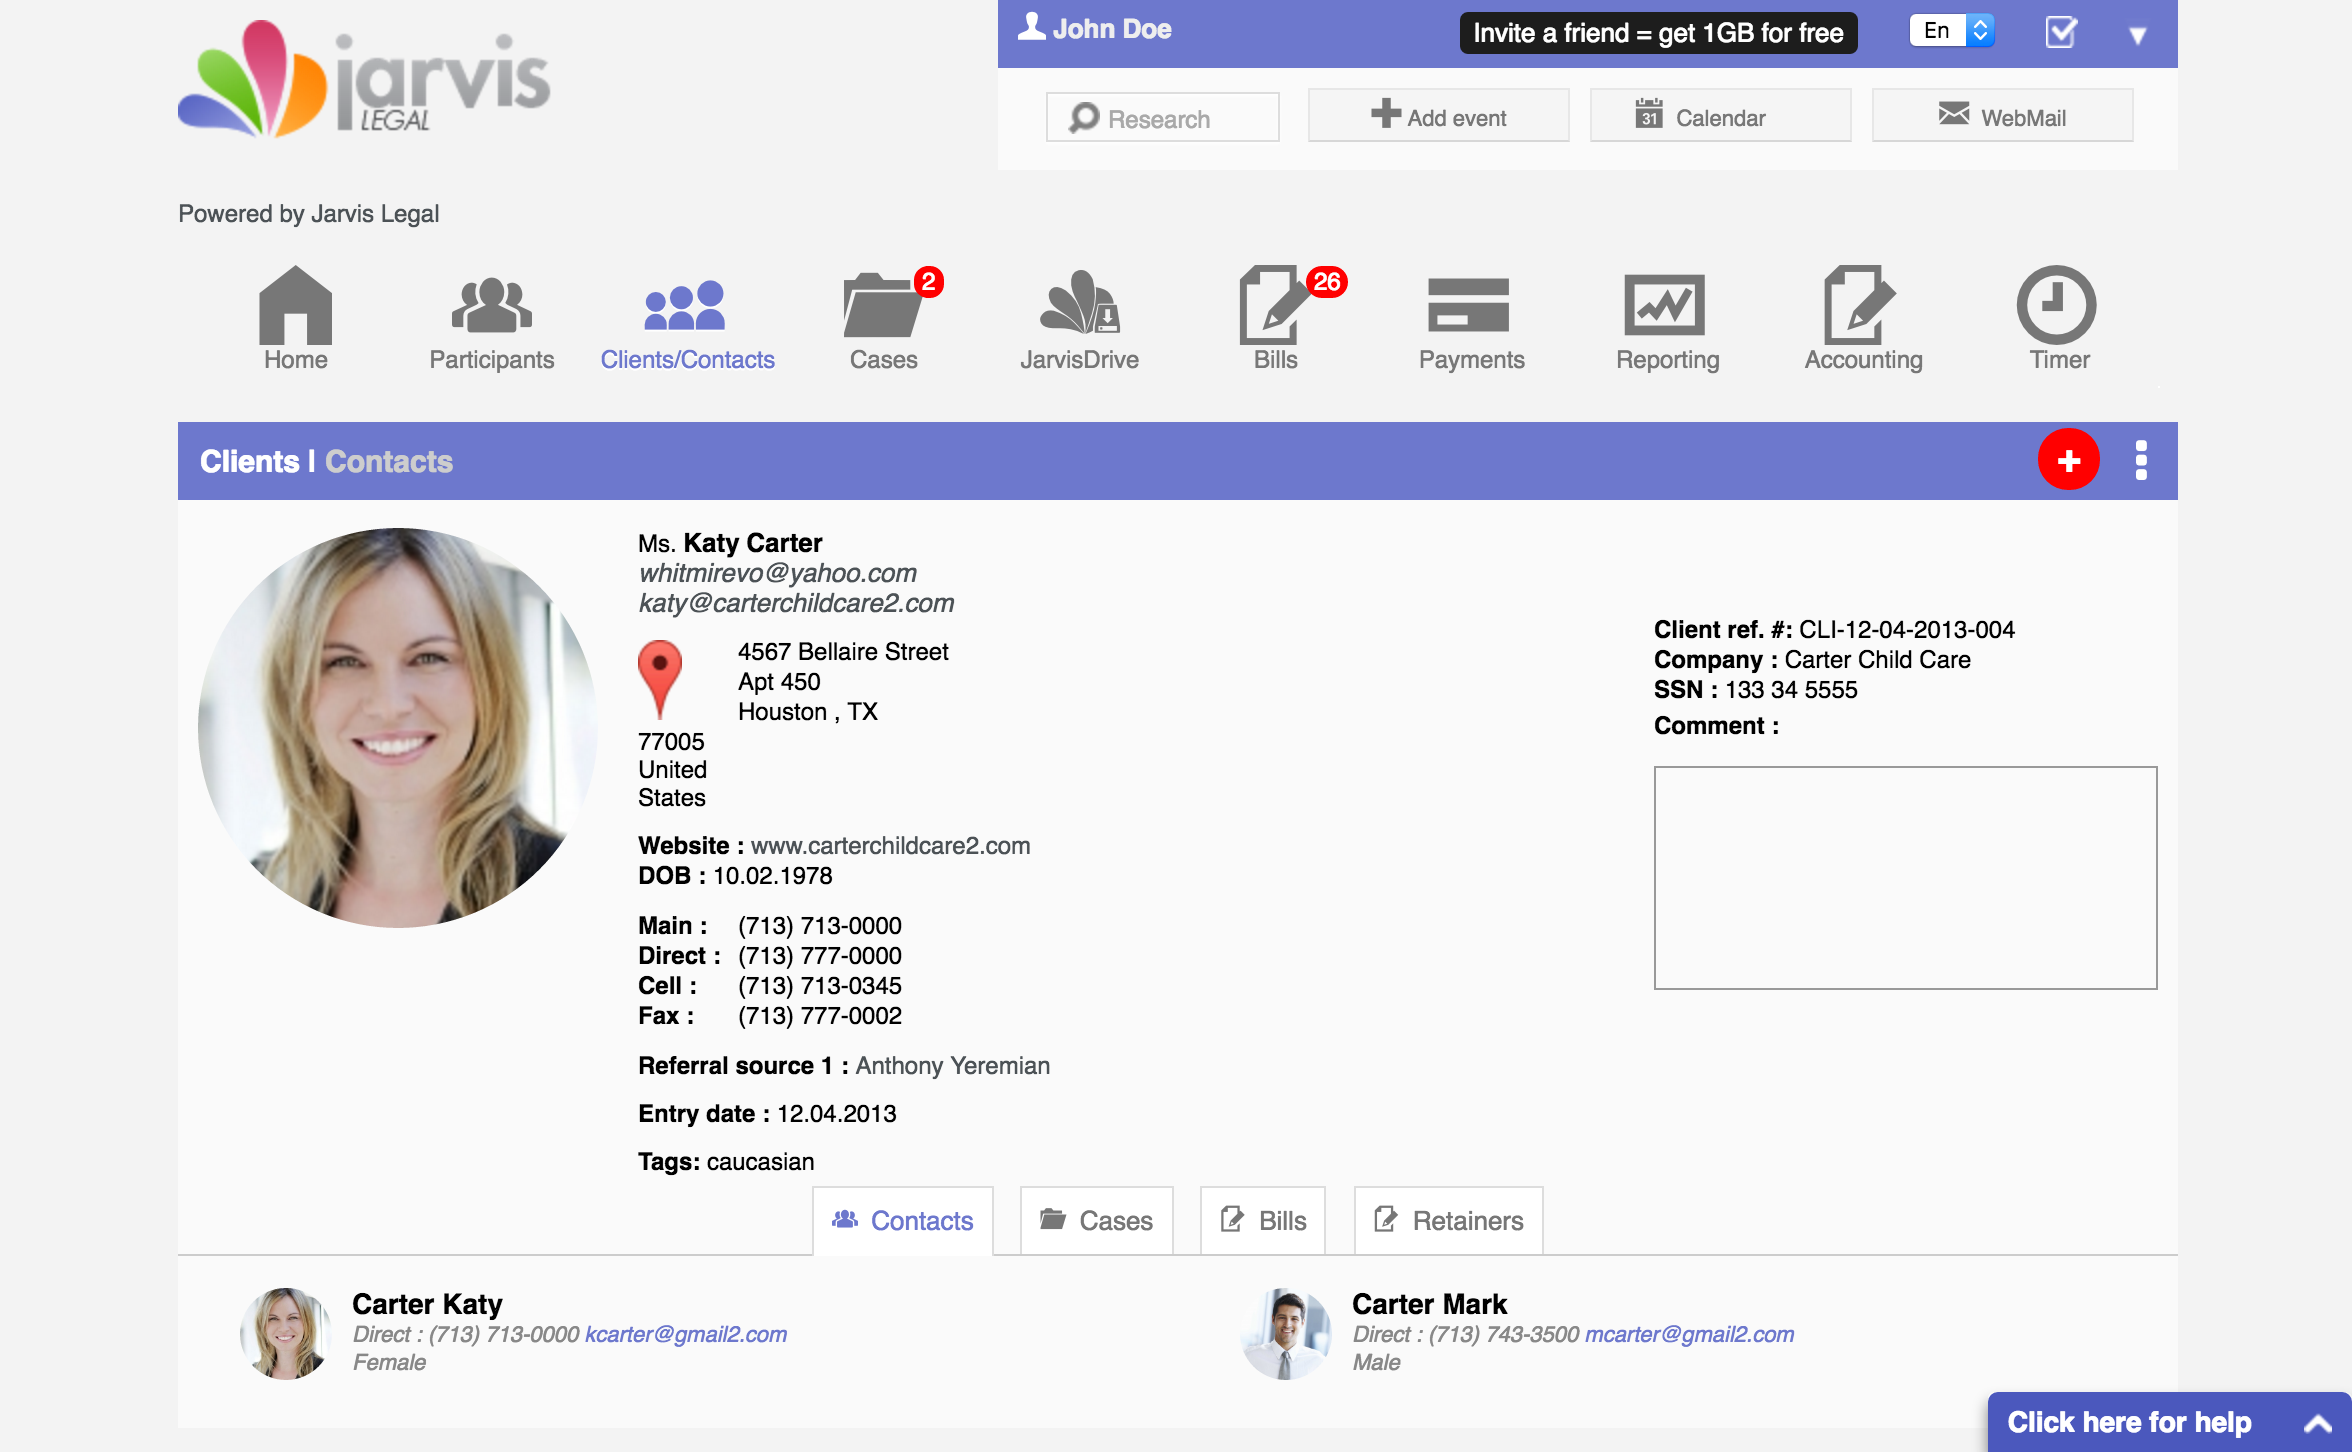 Jarvis Legal Software - Clients